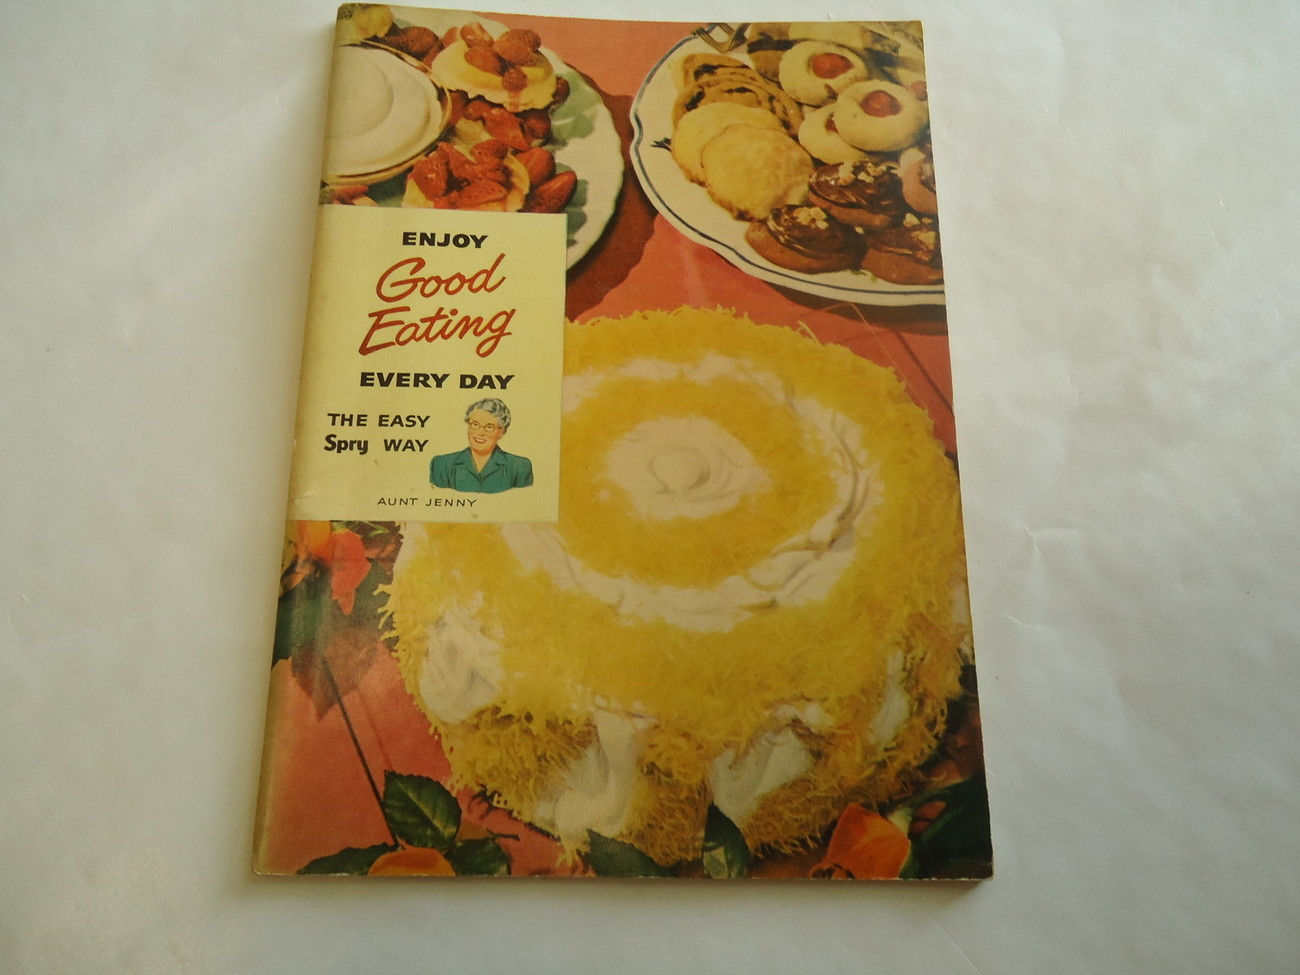 Primary image for Vintage 1949 Spry Shortening ENJOY GOOD EATING Cookbook Aunt Jenny Lever Bro MA